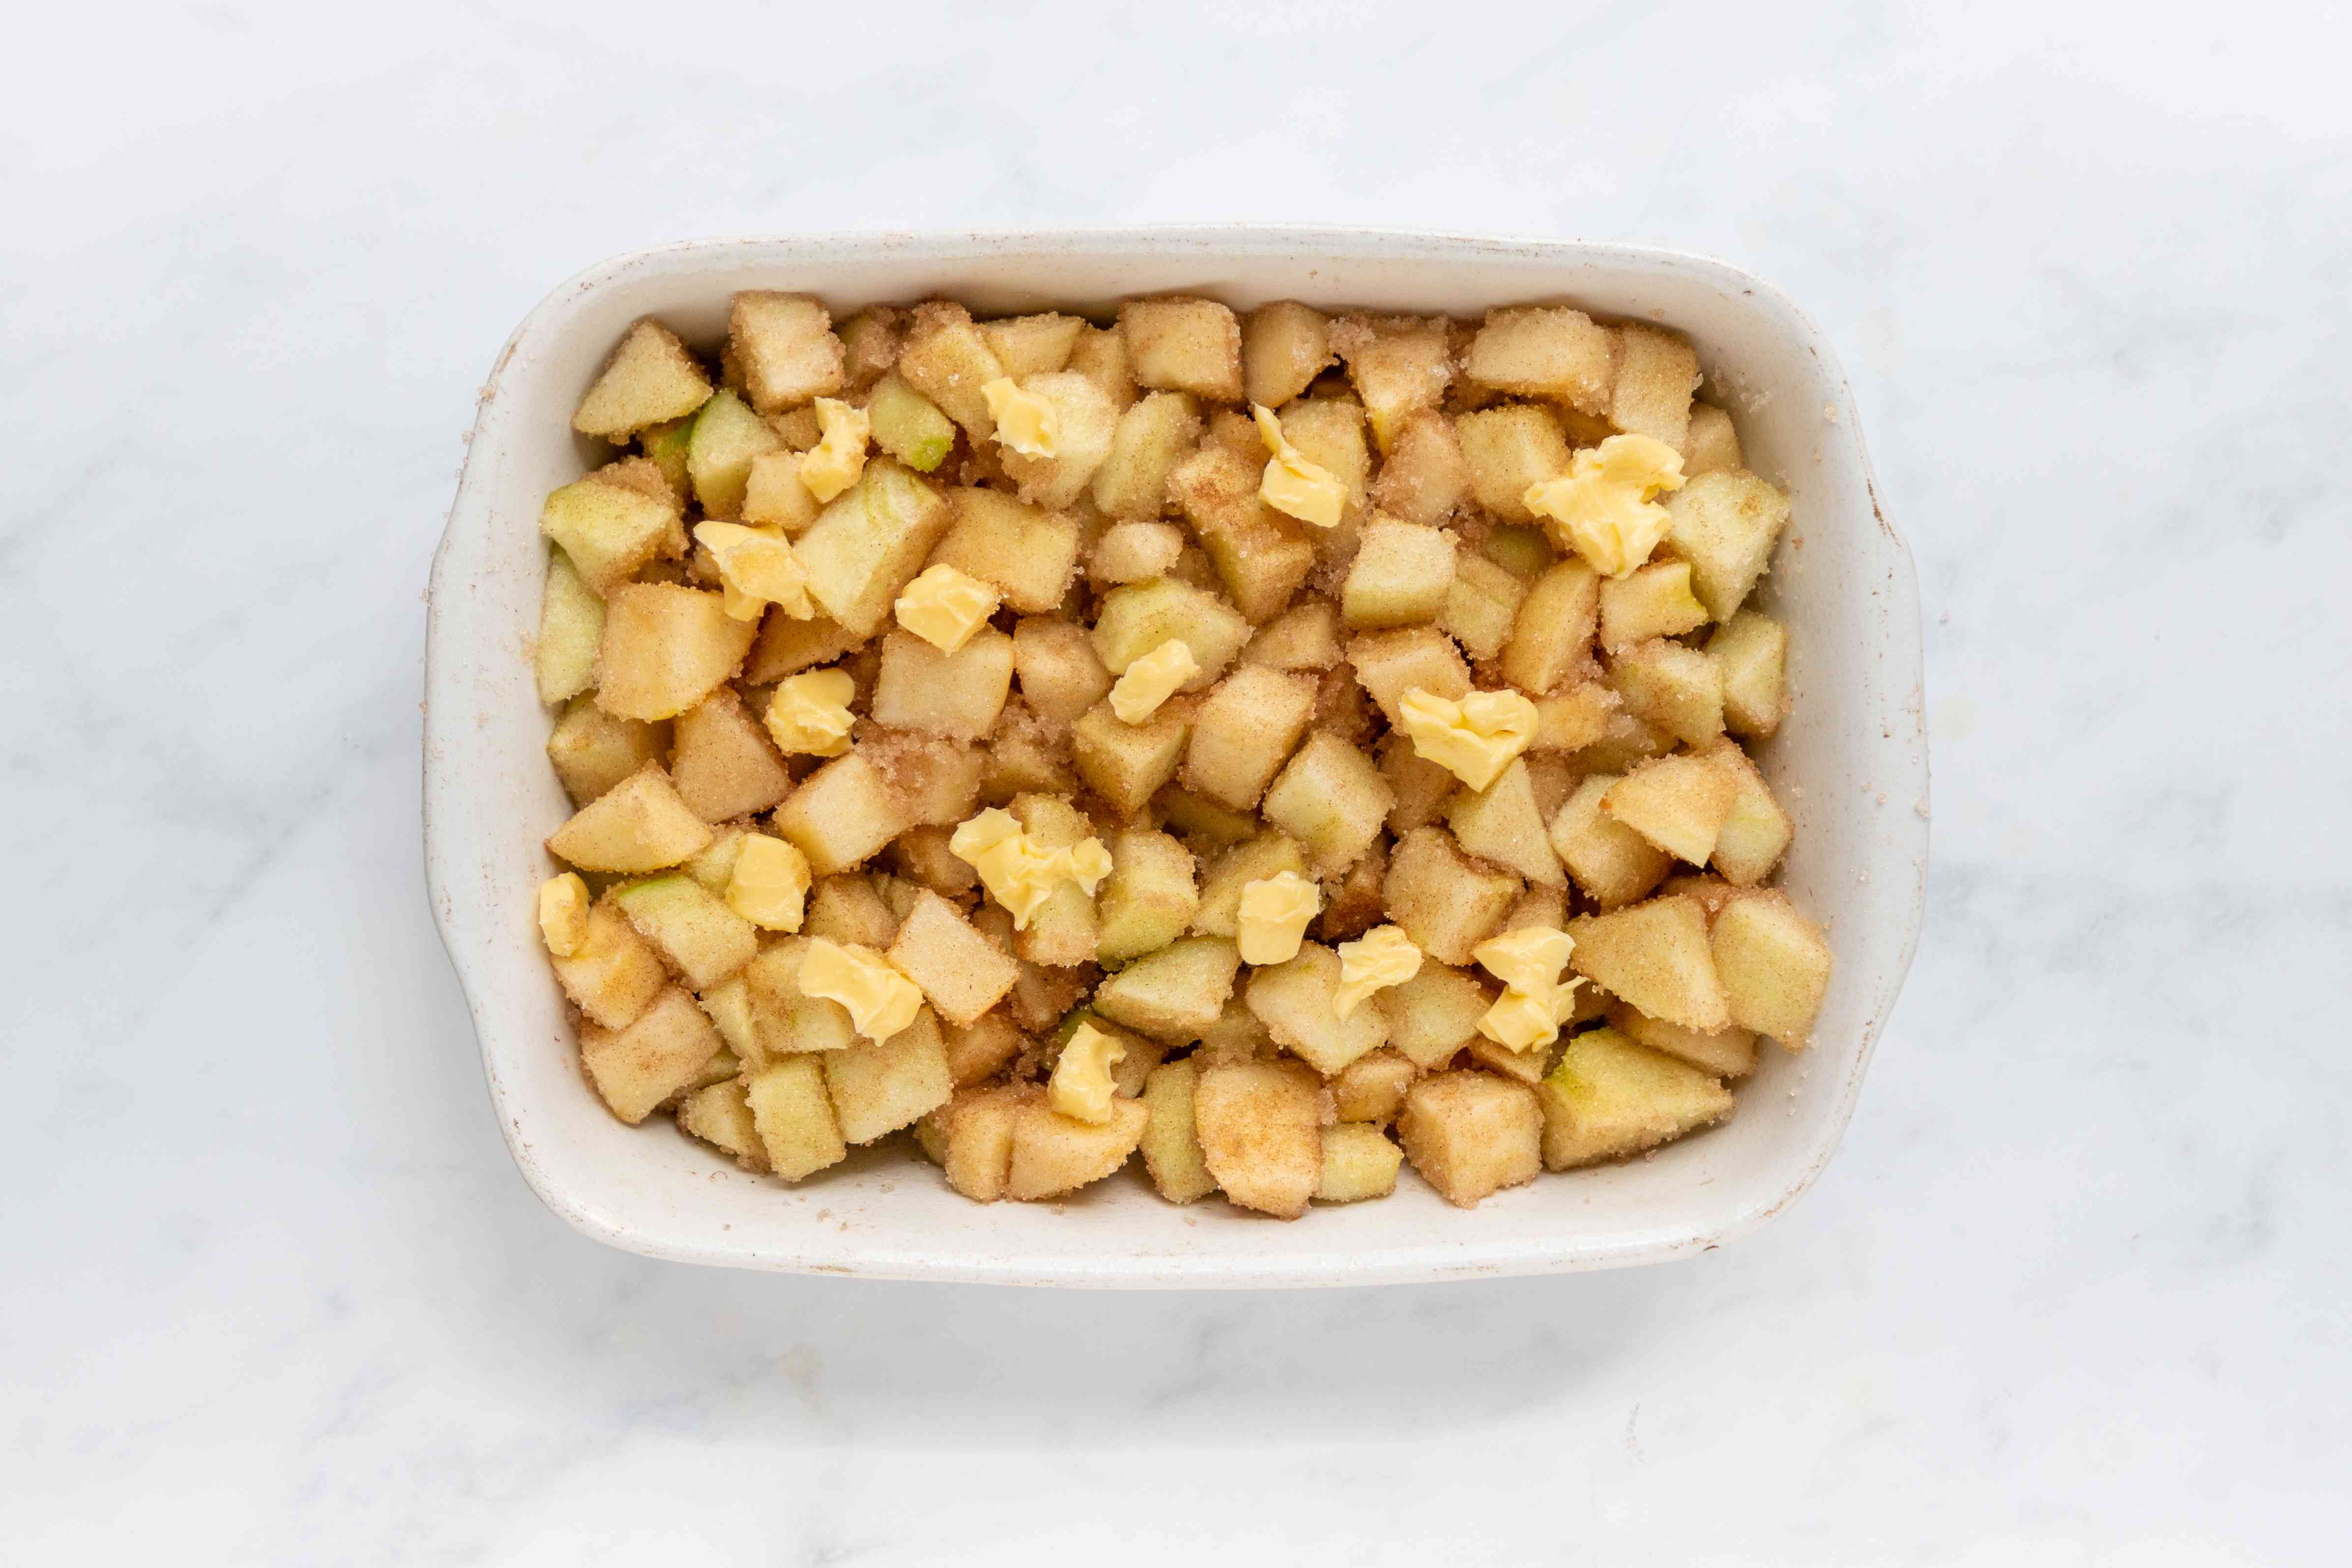 chopped apples with sugar and the cinnamon in a baking dish, with butter on top